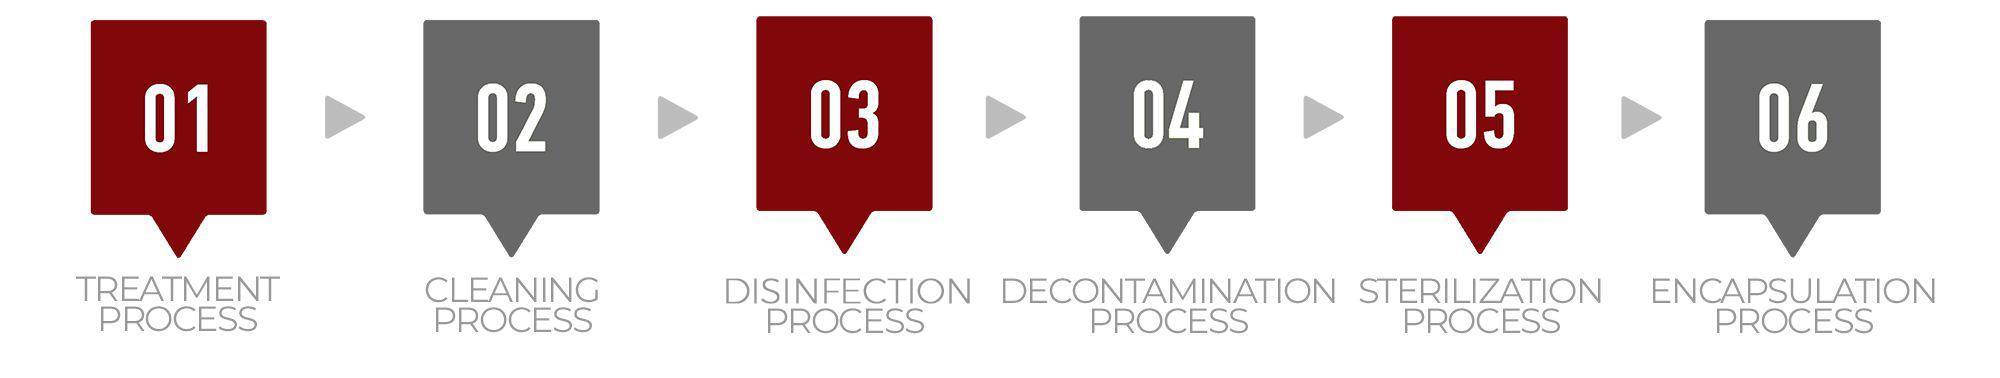 Step 1: Treatment Process, Step 2: Cleaning Process, Step 3: Disinfection Process, Step 4: Decontamination Process, Step 5: Sterilization Process, and Step 6: Encapsulation Process